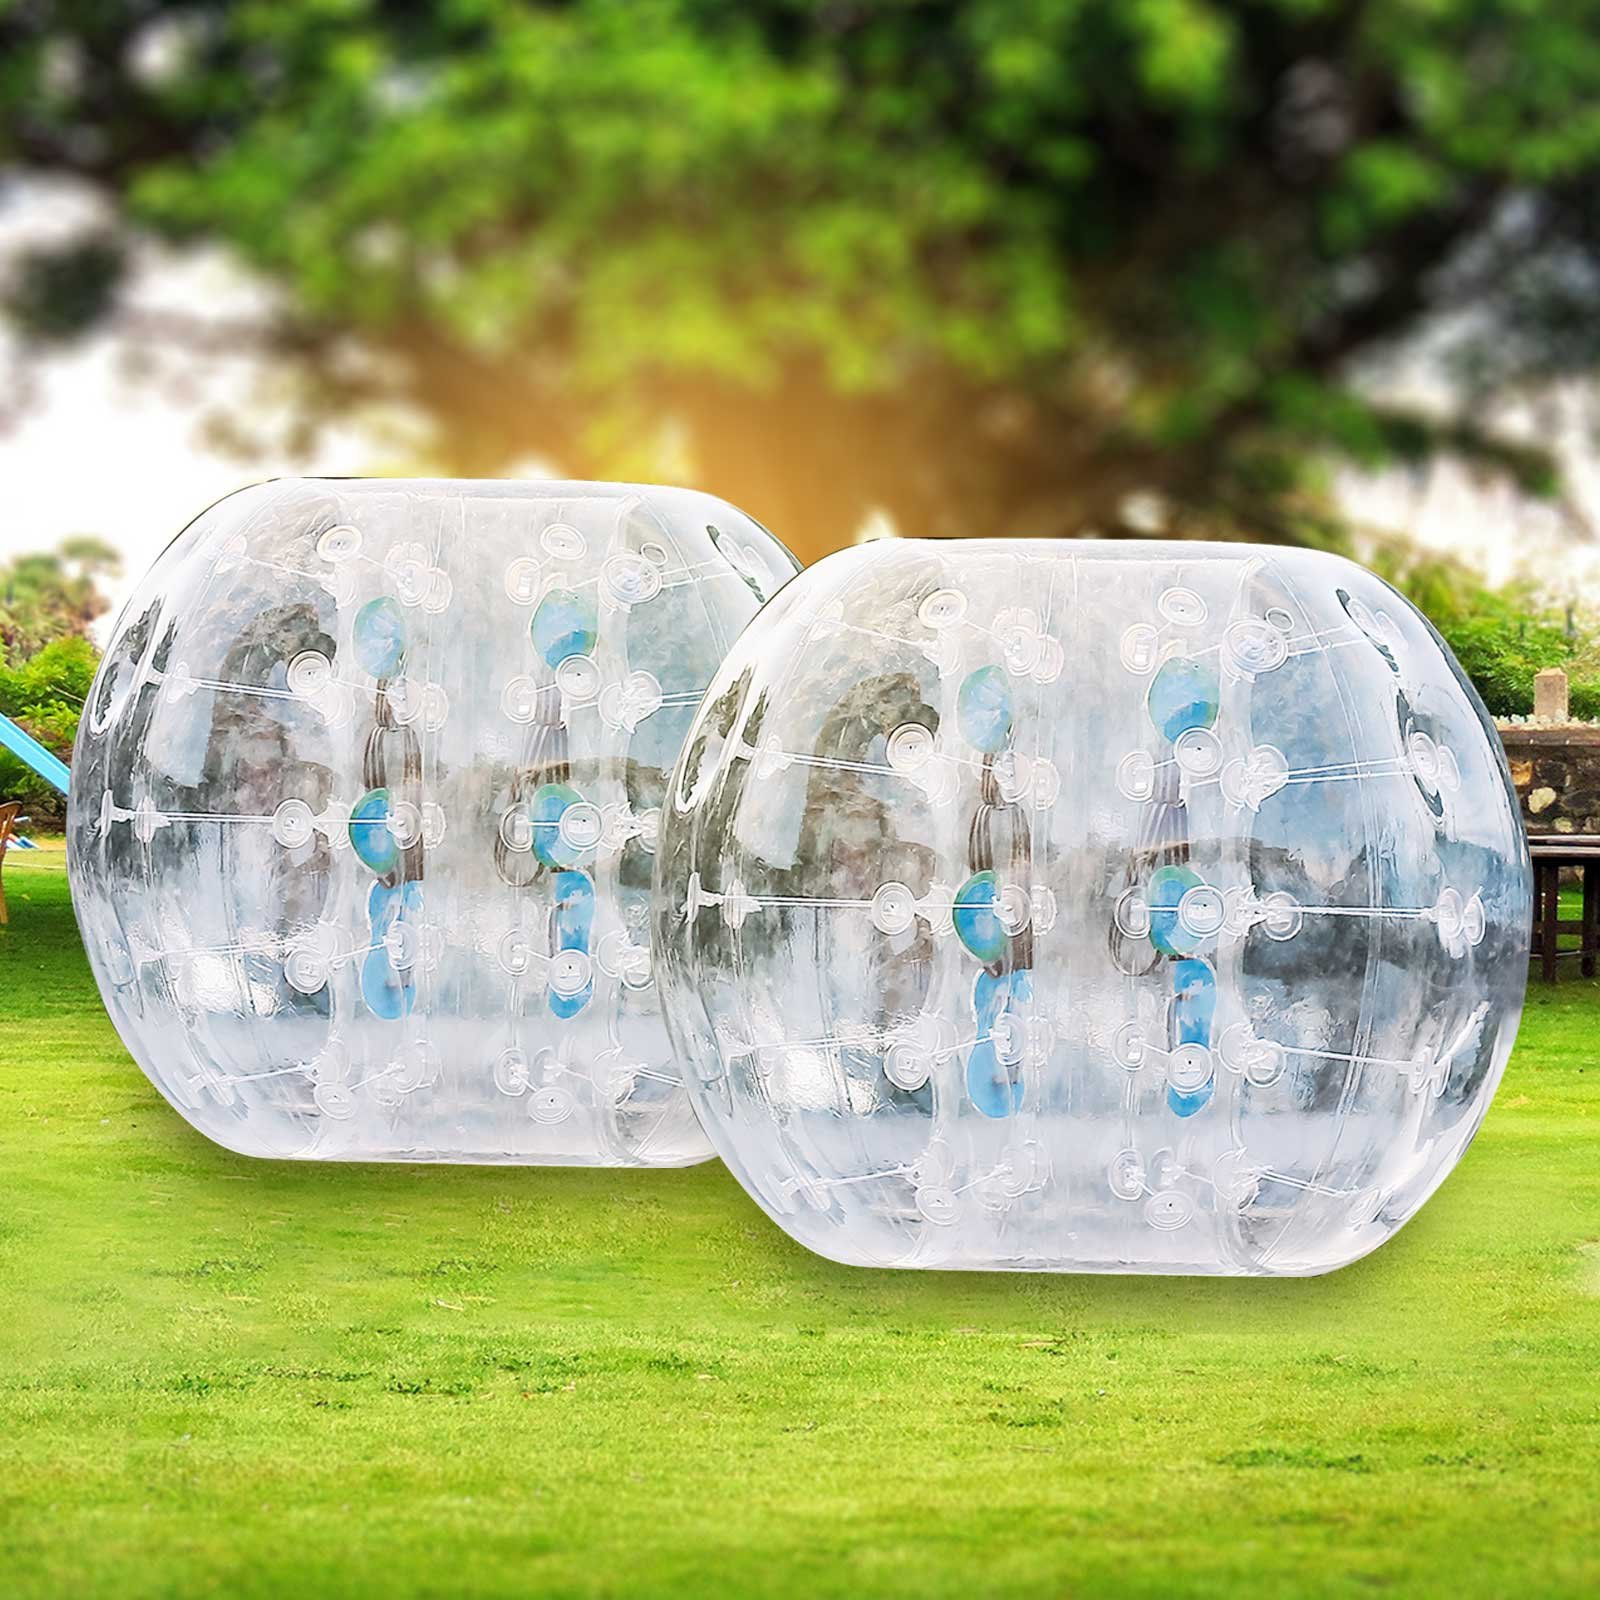 OrangeA Inflatable Bumper Ball Diameter 1.2M Bubble Soccer Ball 0.8mm PVC Transparent Material Zorb Ball for Adults and Kids (2 Pcs ) by OrangeA (Image #1)